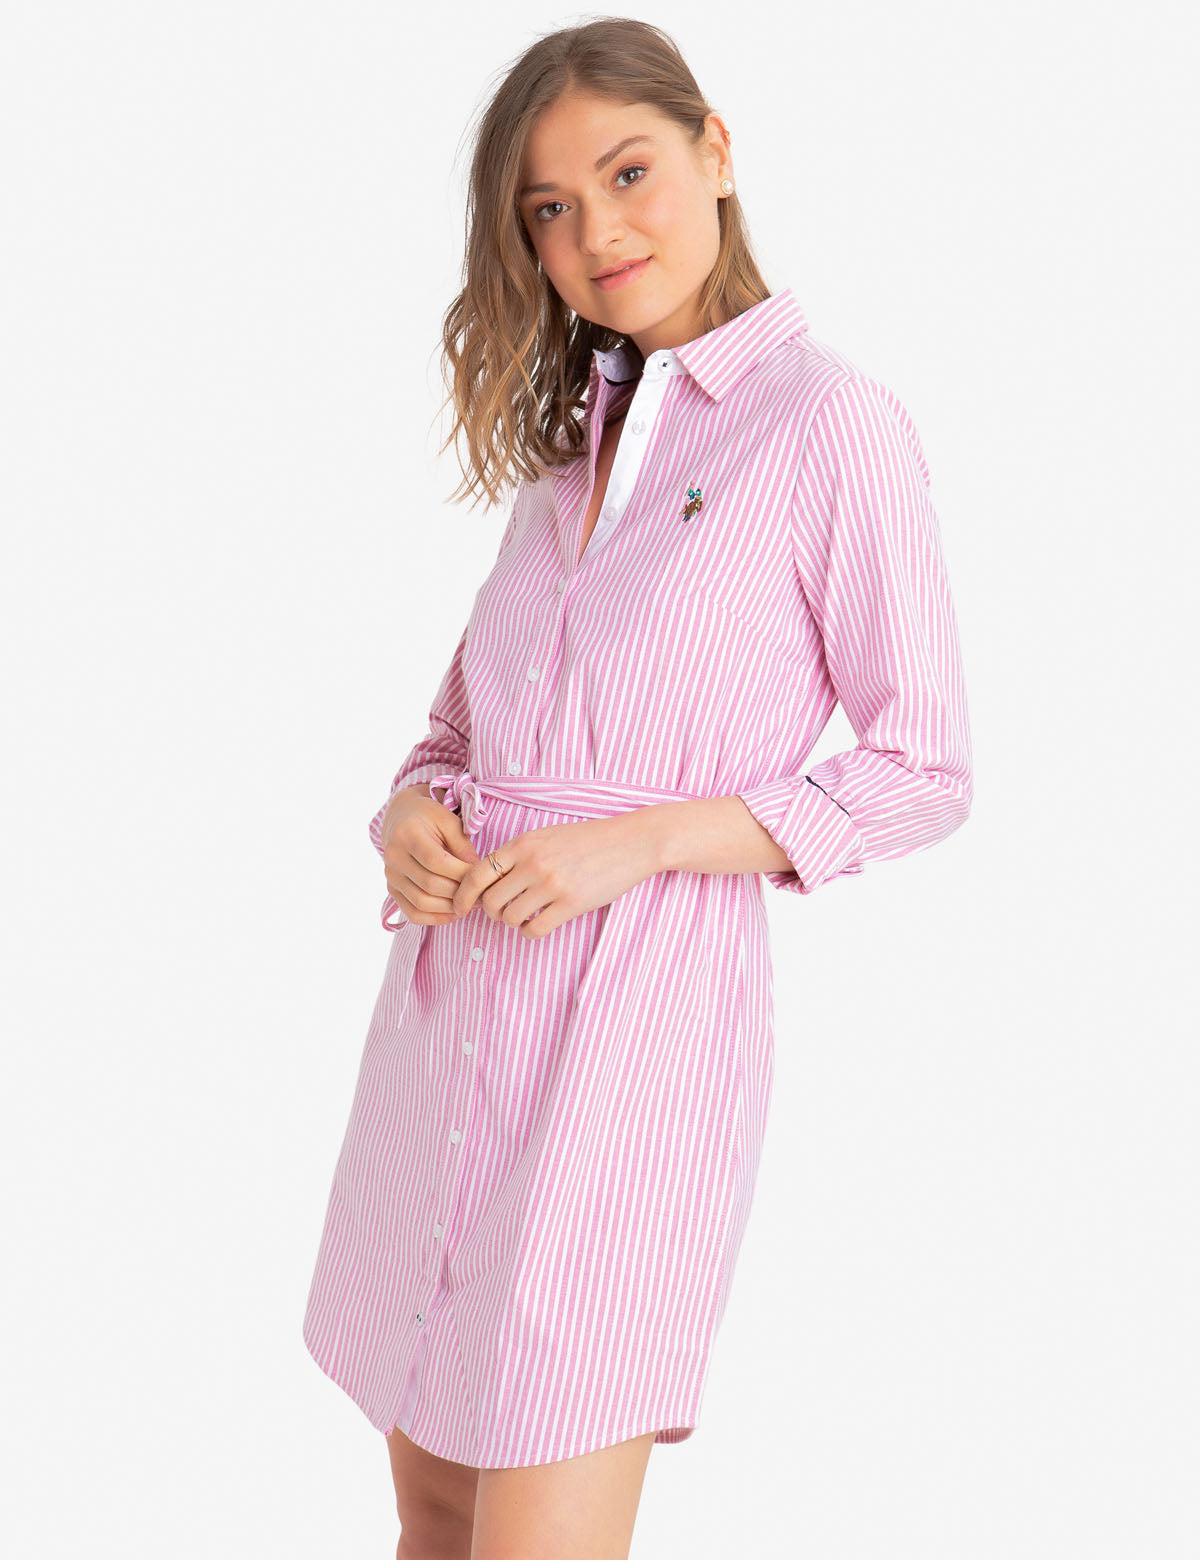 STRIPED MULTI-COLORED LOGO OXFORD DRESS - U.S. Polo Assn.